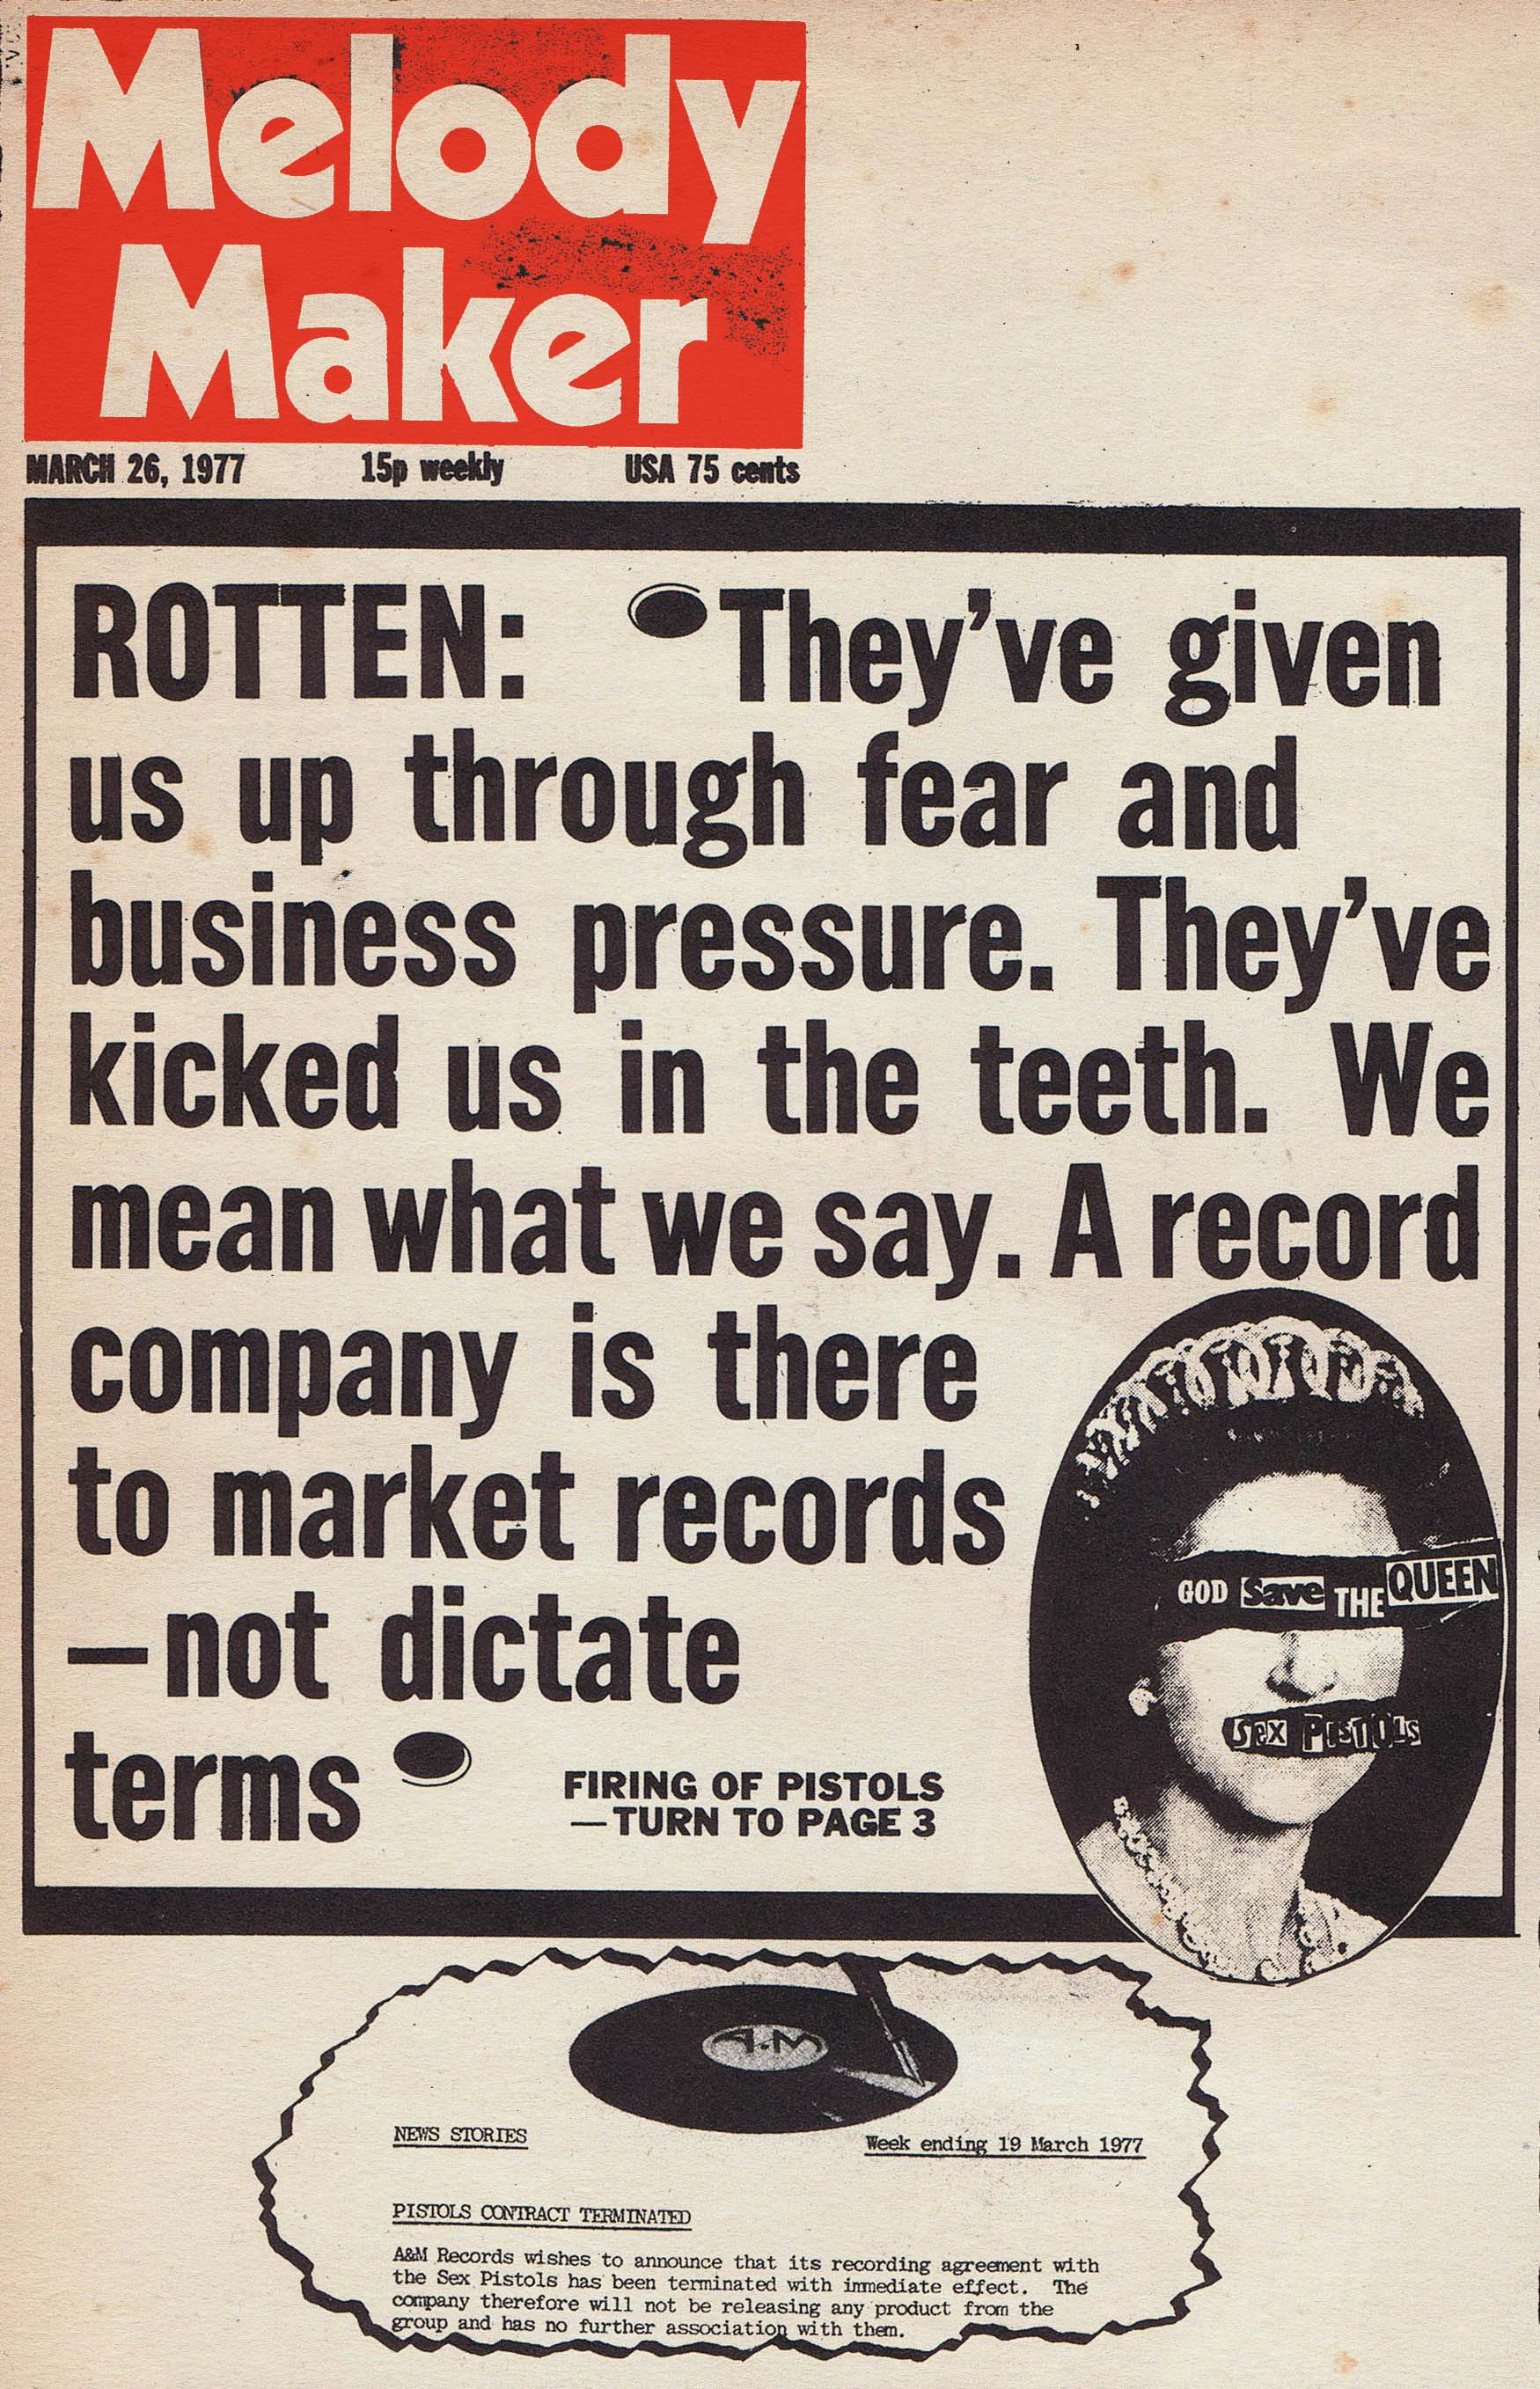 Melody Maker, March 26th 1977